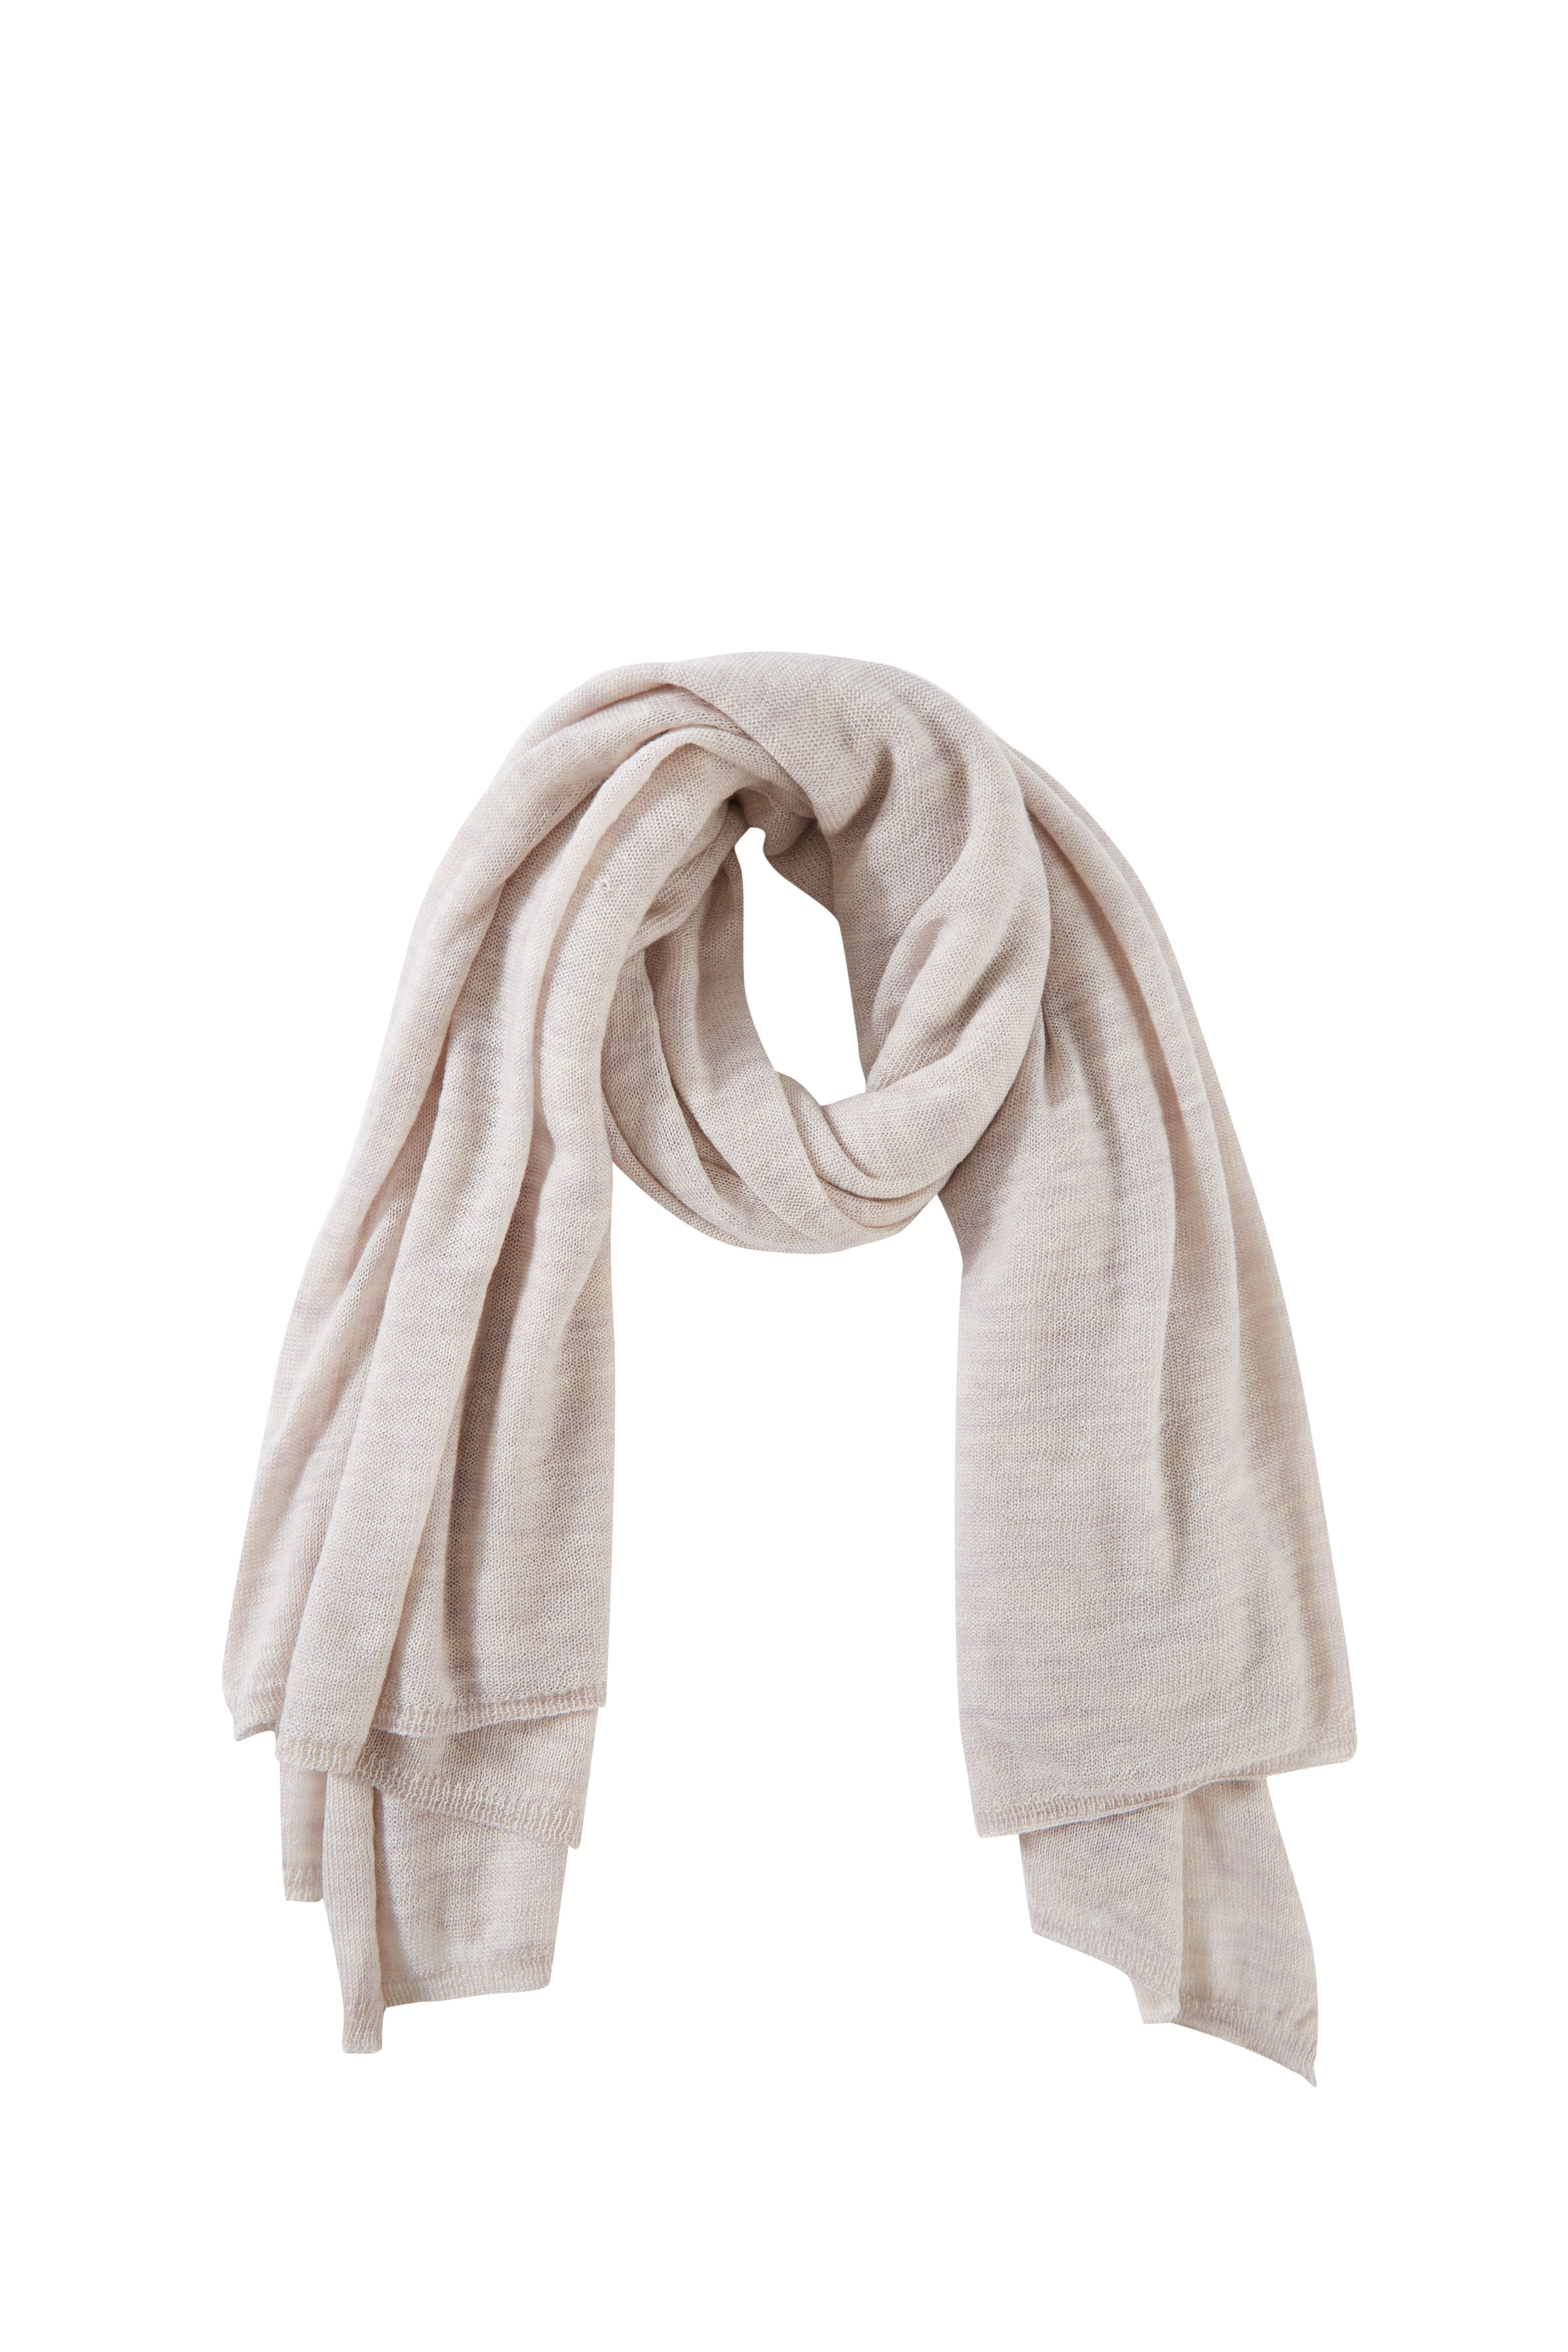 Women's Accessories First Essential Knit Cashmere Wool Scarf